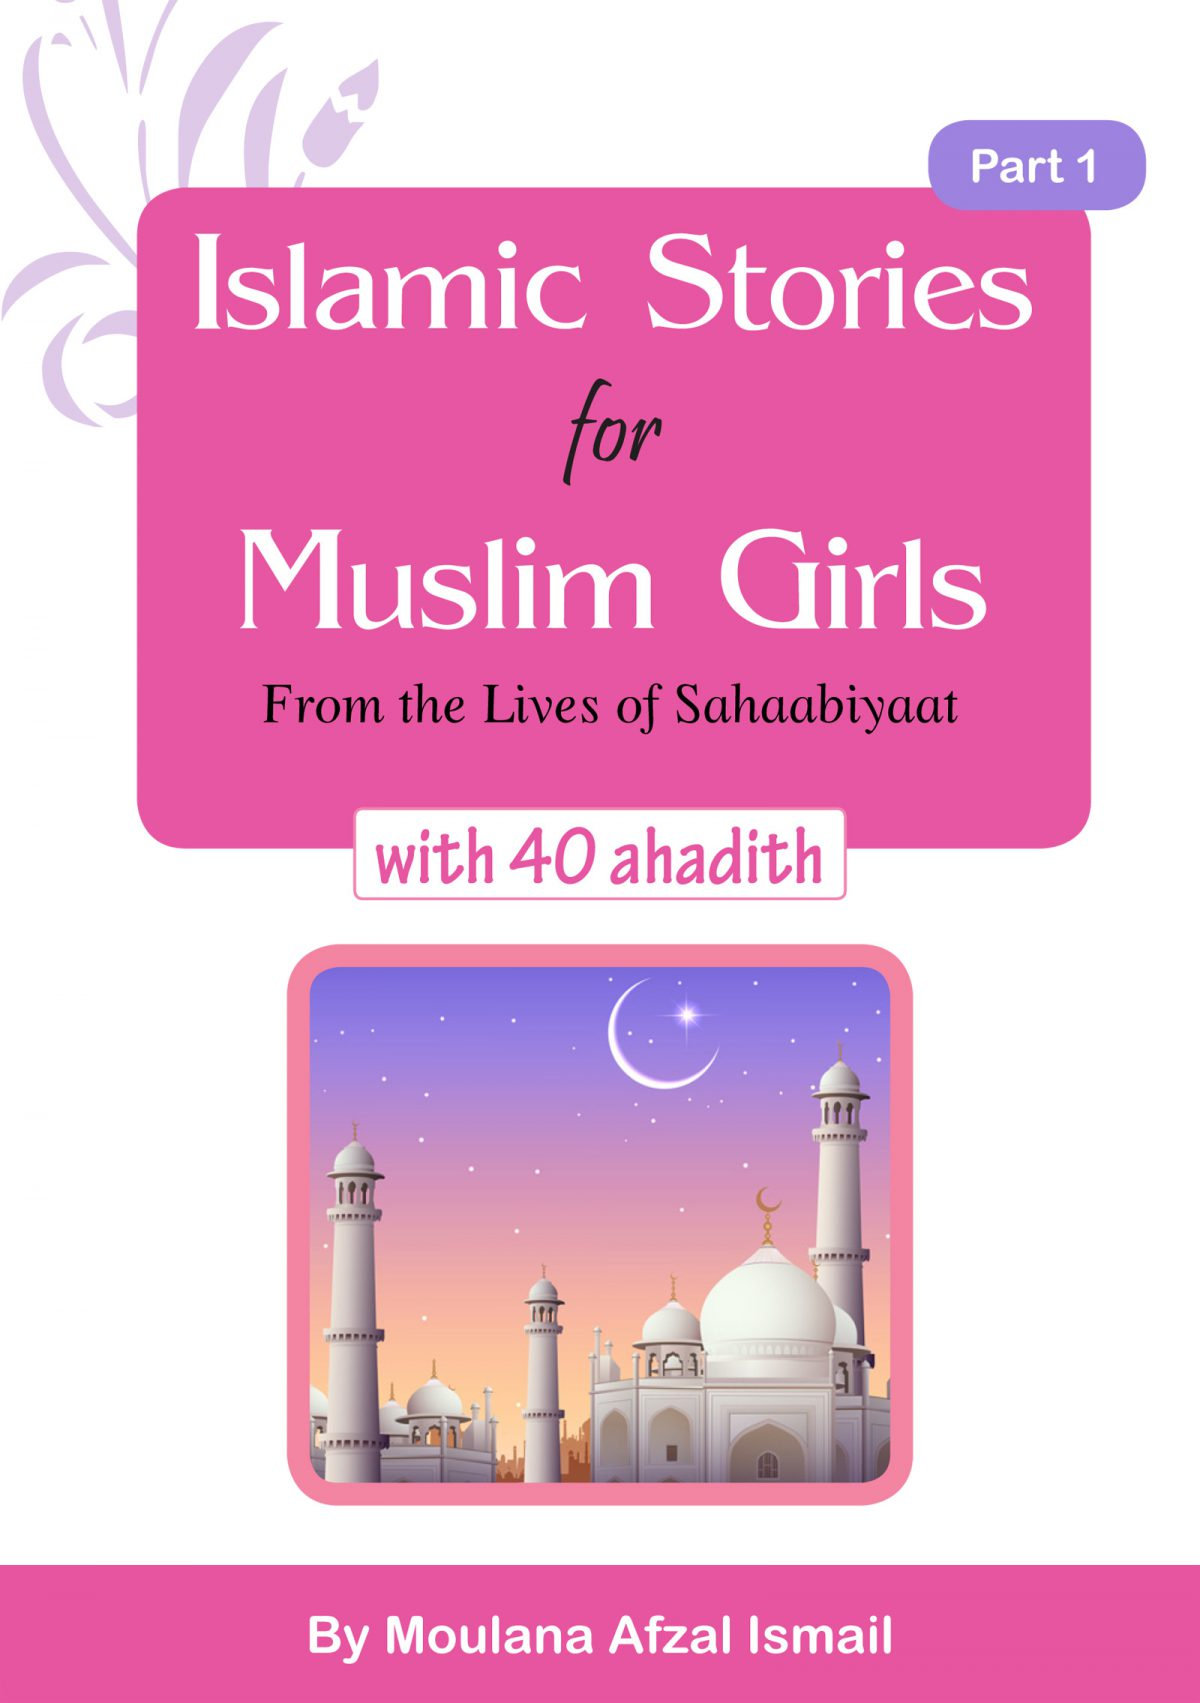 Islamic Stories for Muslim Girls Part 1